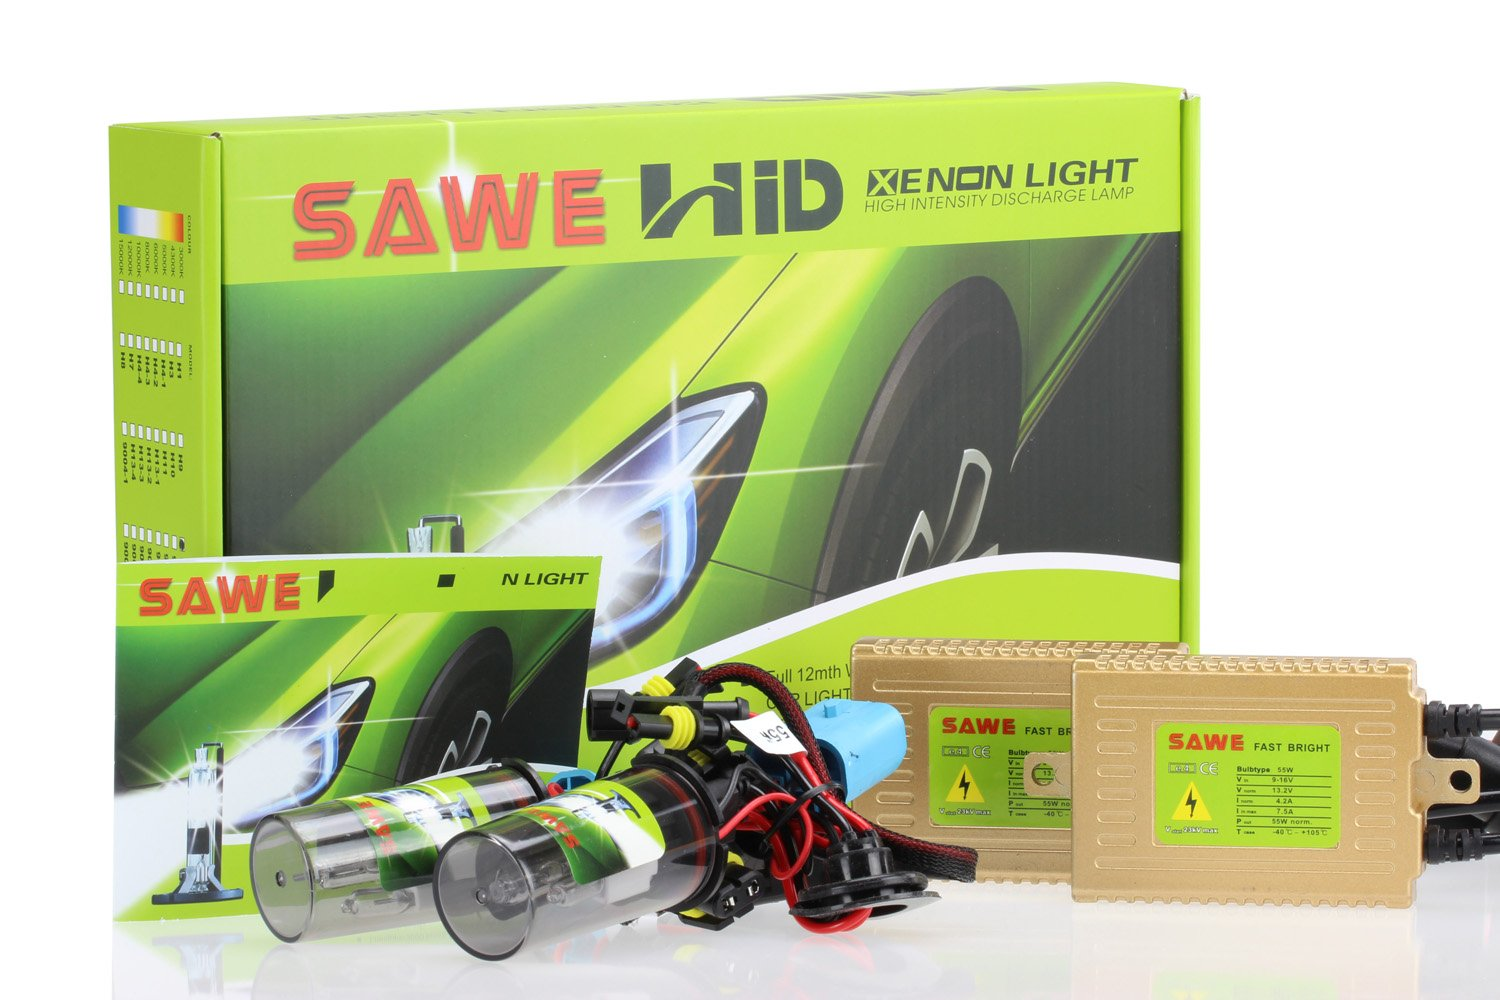 SAWE AC 55W HID Xenon Conversion Kit With ''Slim'' ballast HID Headlight Quick Start HID Kit (2 Bulbs & 2 Ballasts) 9006 (HB4) - 6000K (Diamond White) 1 Year Warranty